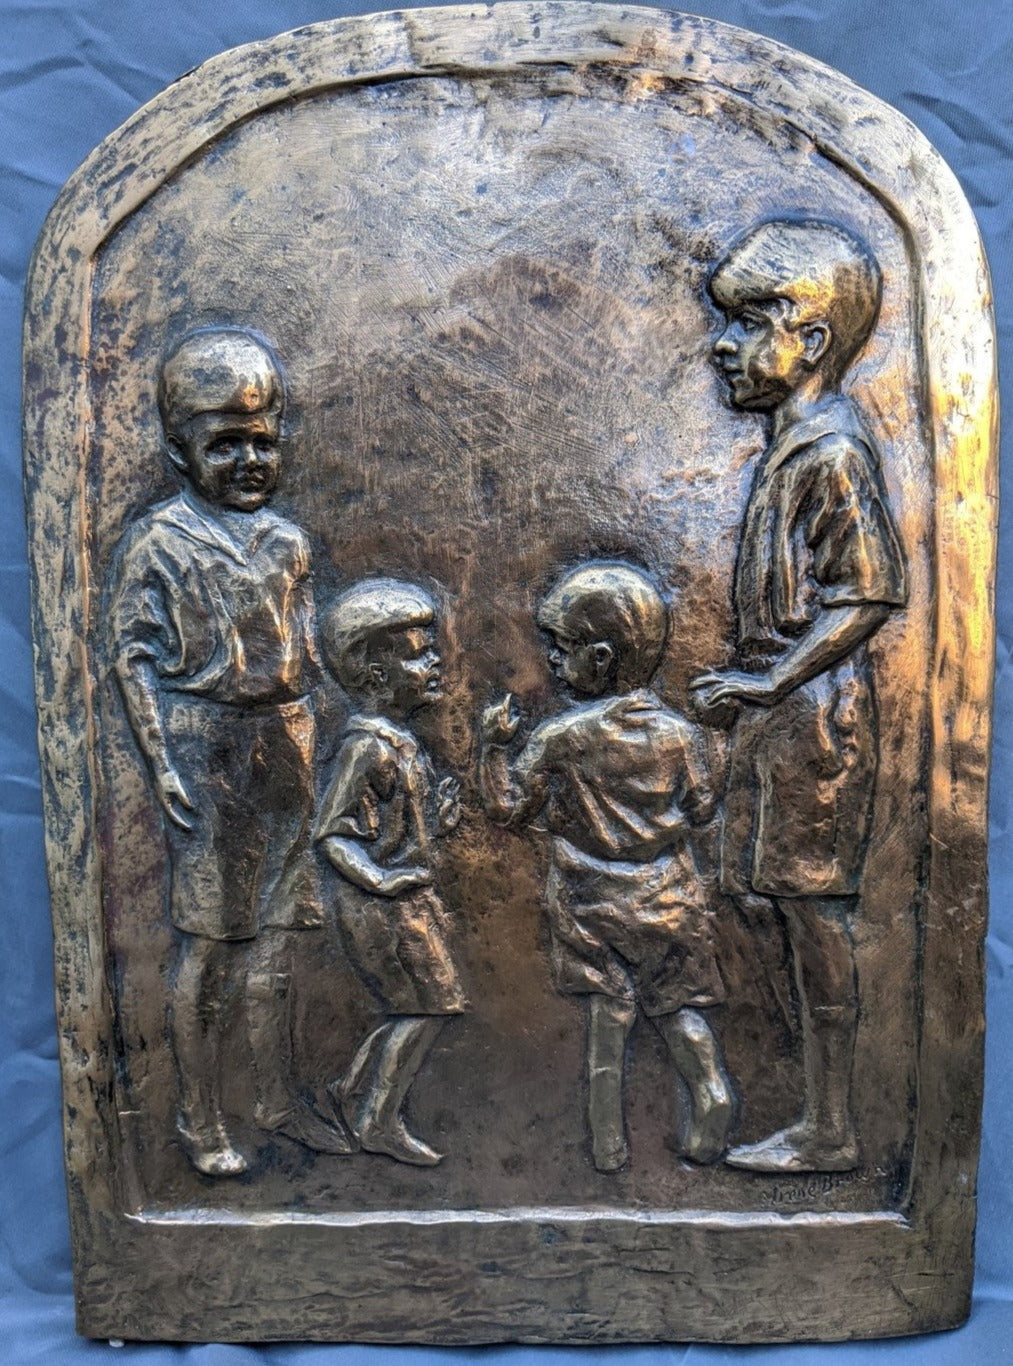 SIGNED BRASS PLAQUE OF 4 BOYS